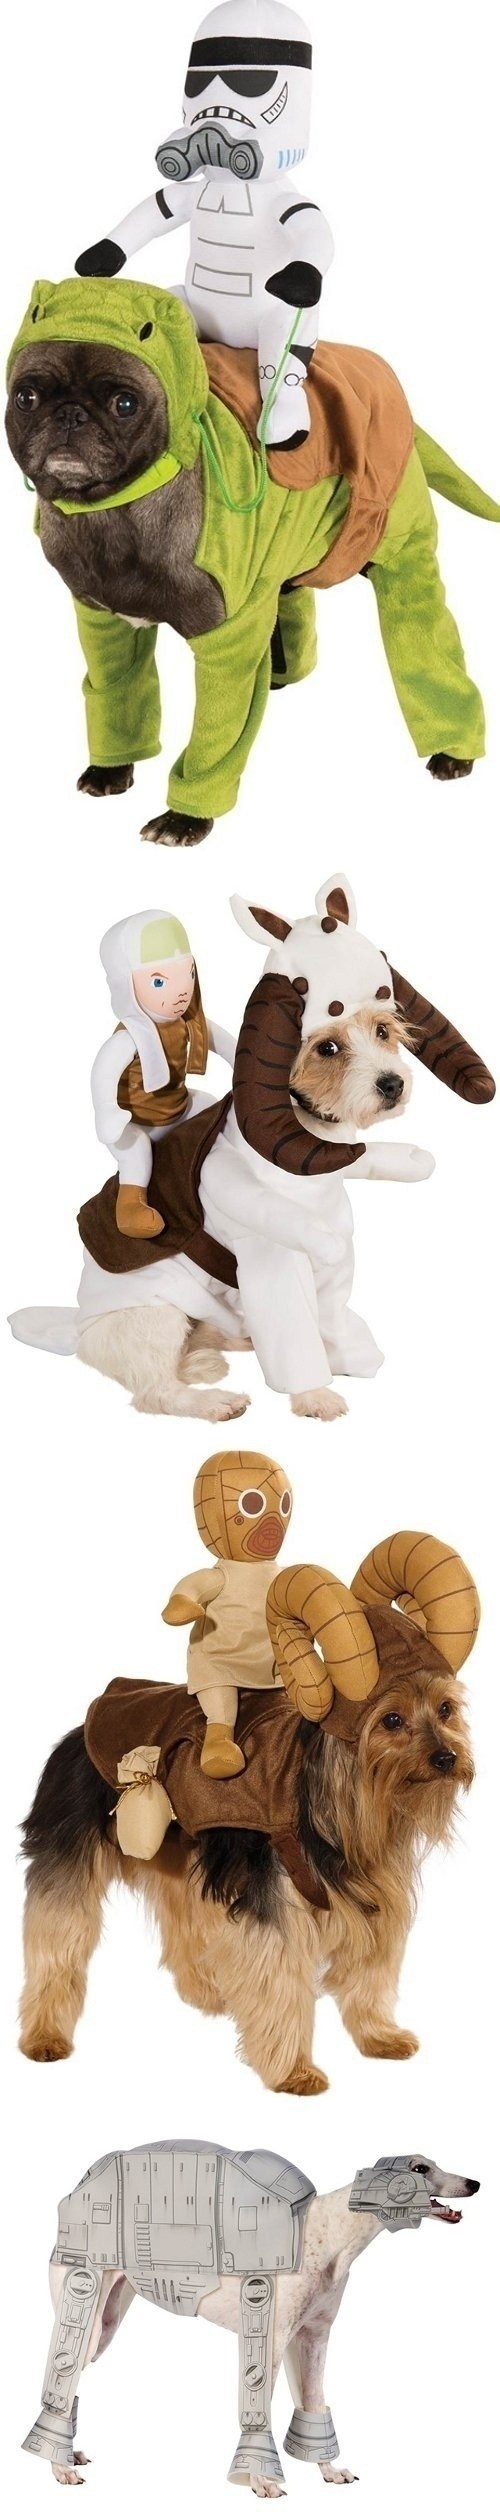 dogs star wars dog costumes - 7482594048